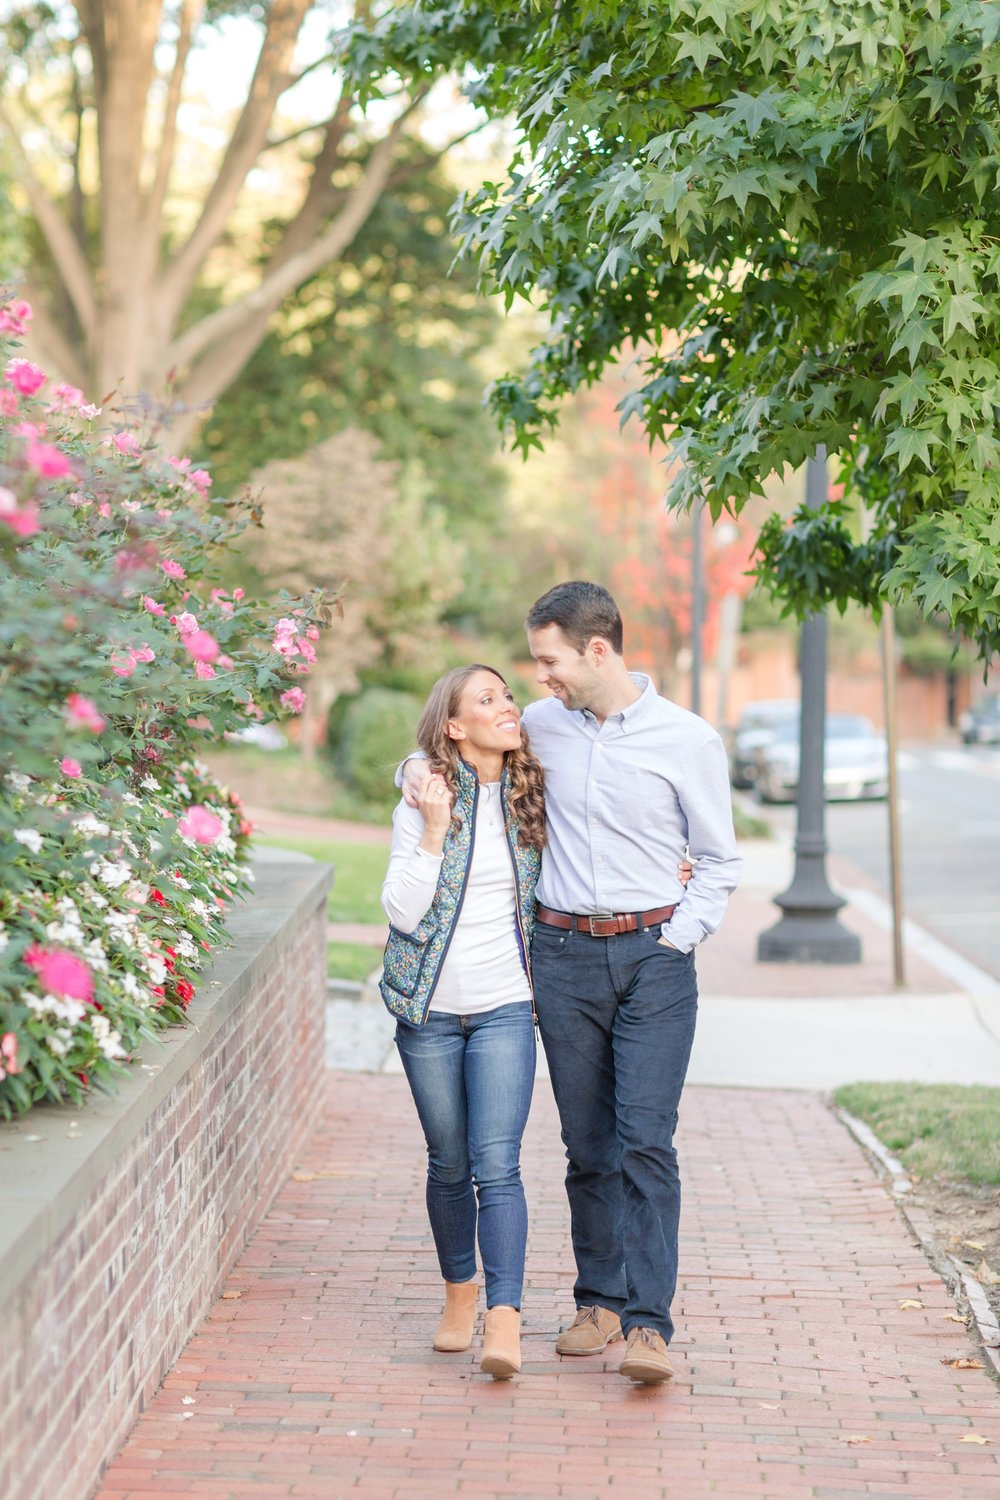 Emily Schroeder & Brian Malat Engagement-161_Georgetown-DC-engagement-virginia-engagement-photographer-anna-grace-photography-photo.jpg